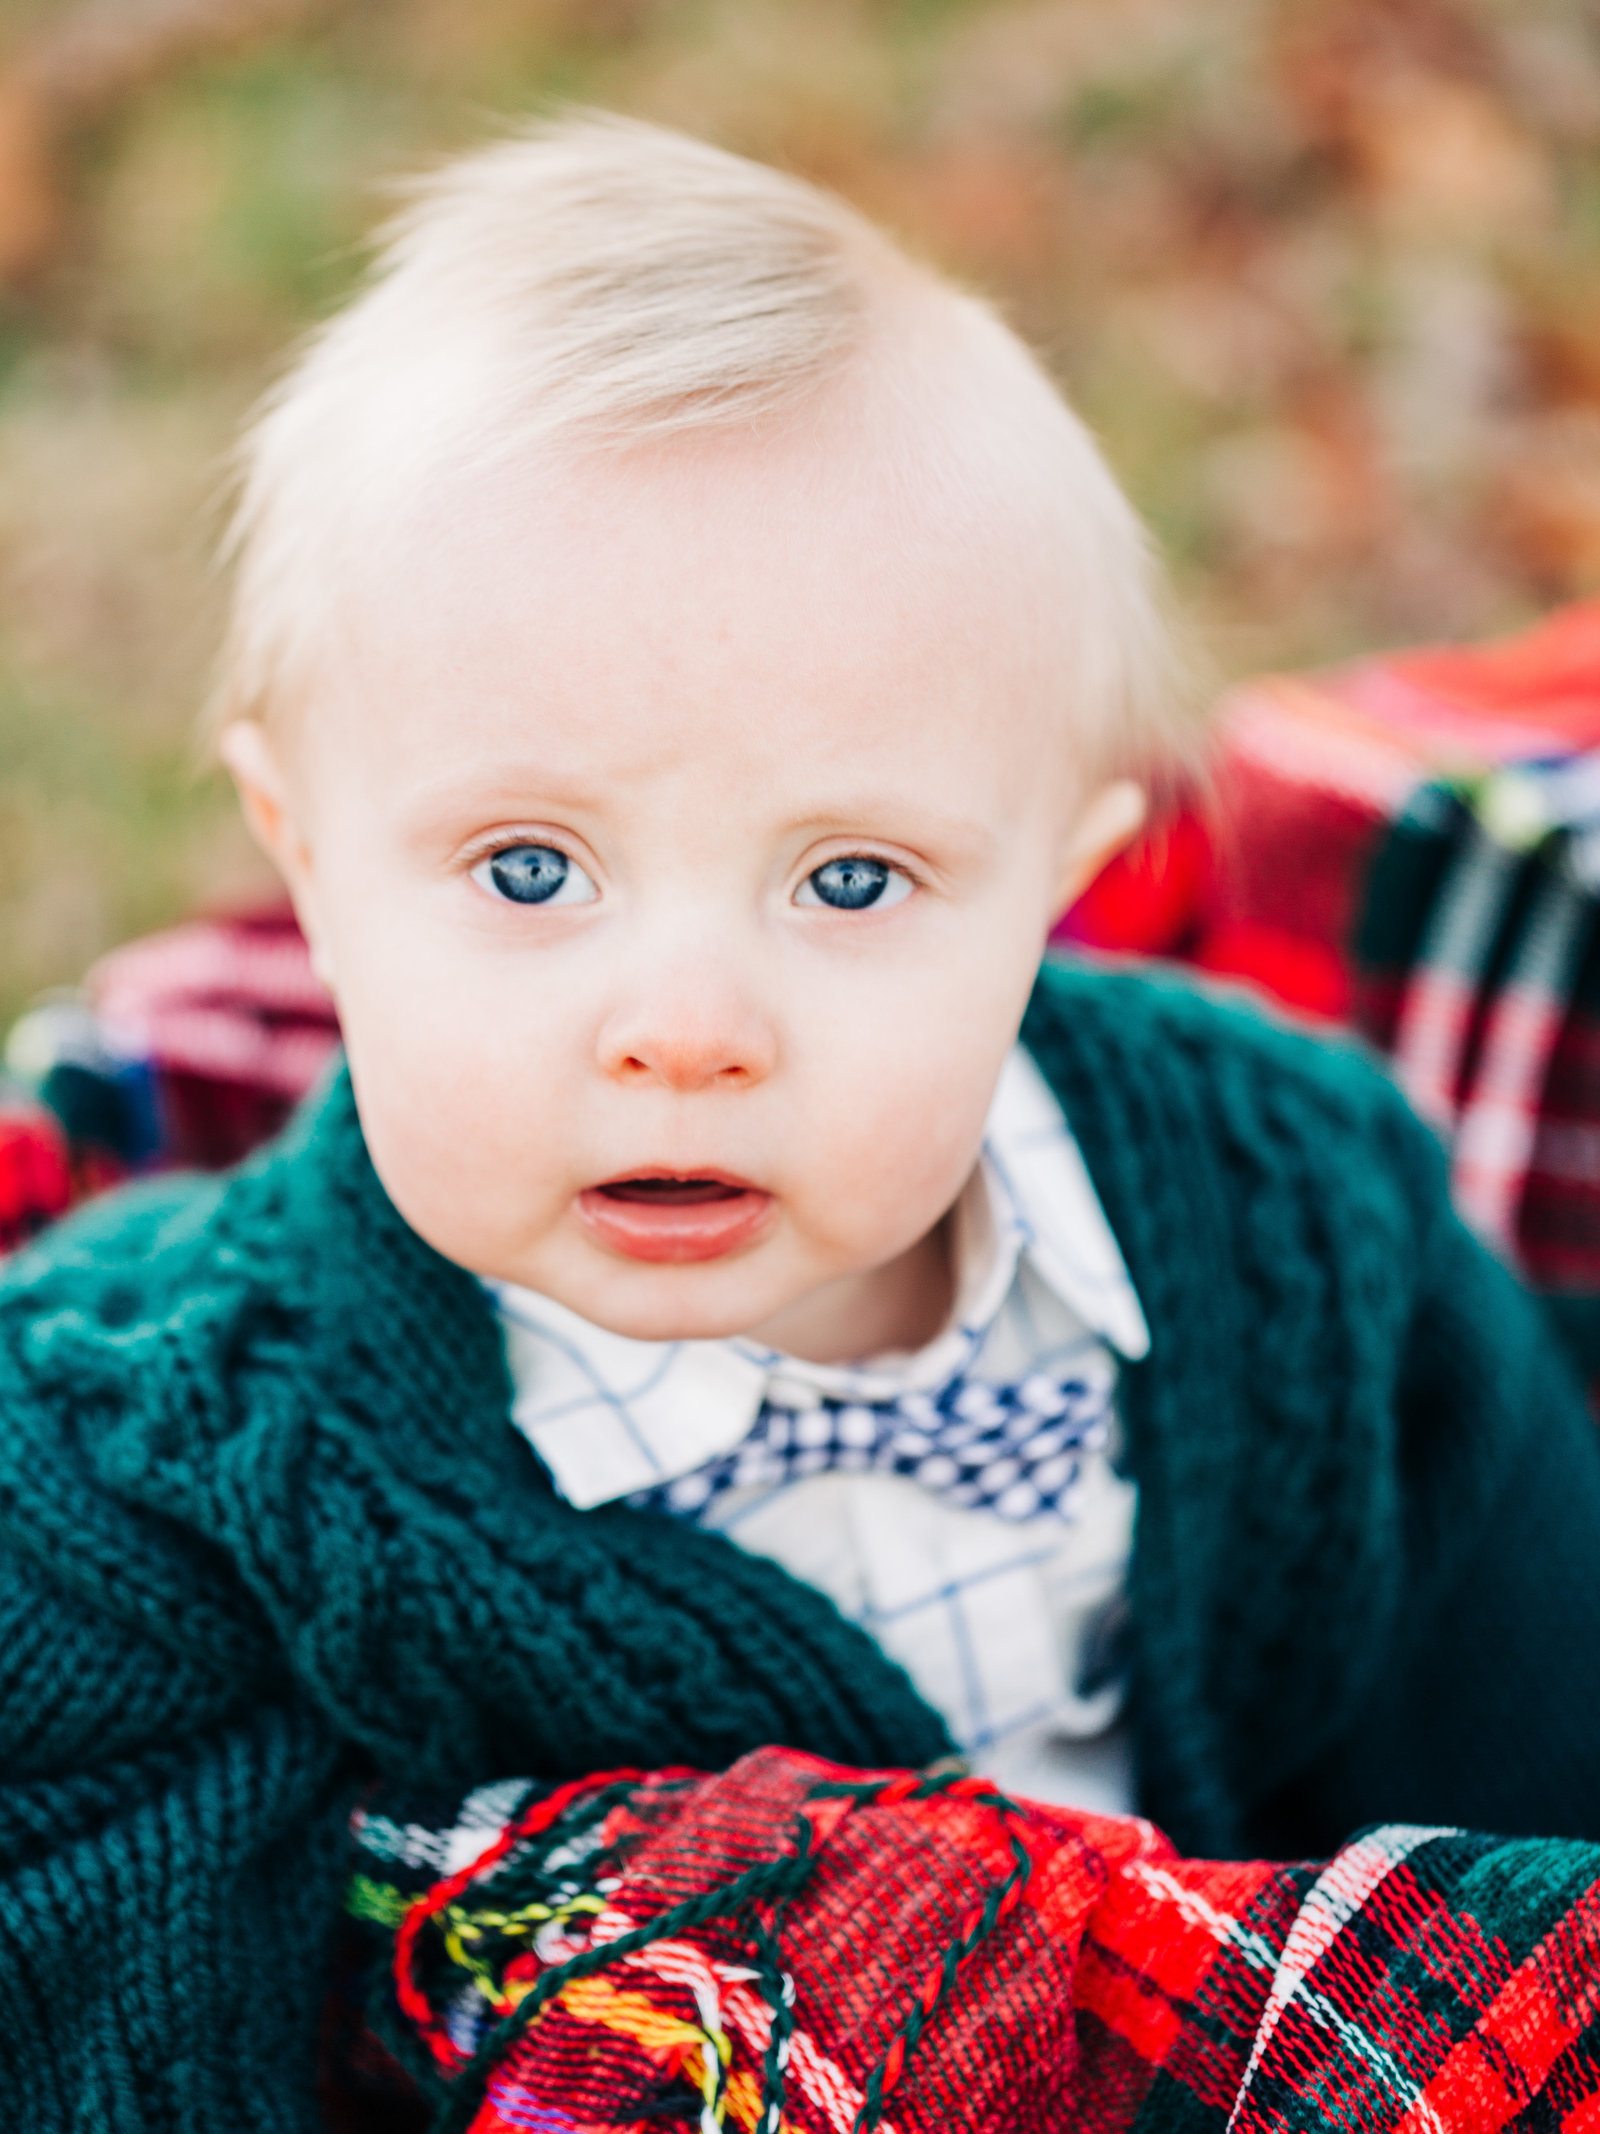 Baby in green sweater sits in a silver tub with red plaid blanket